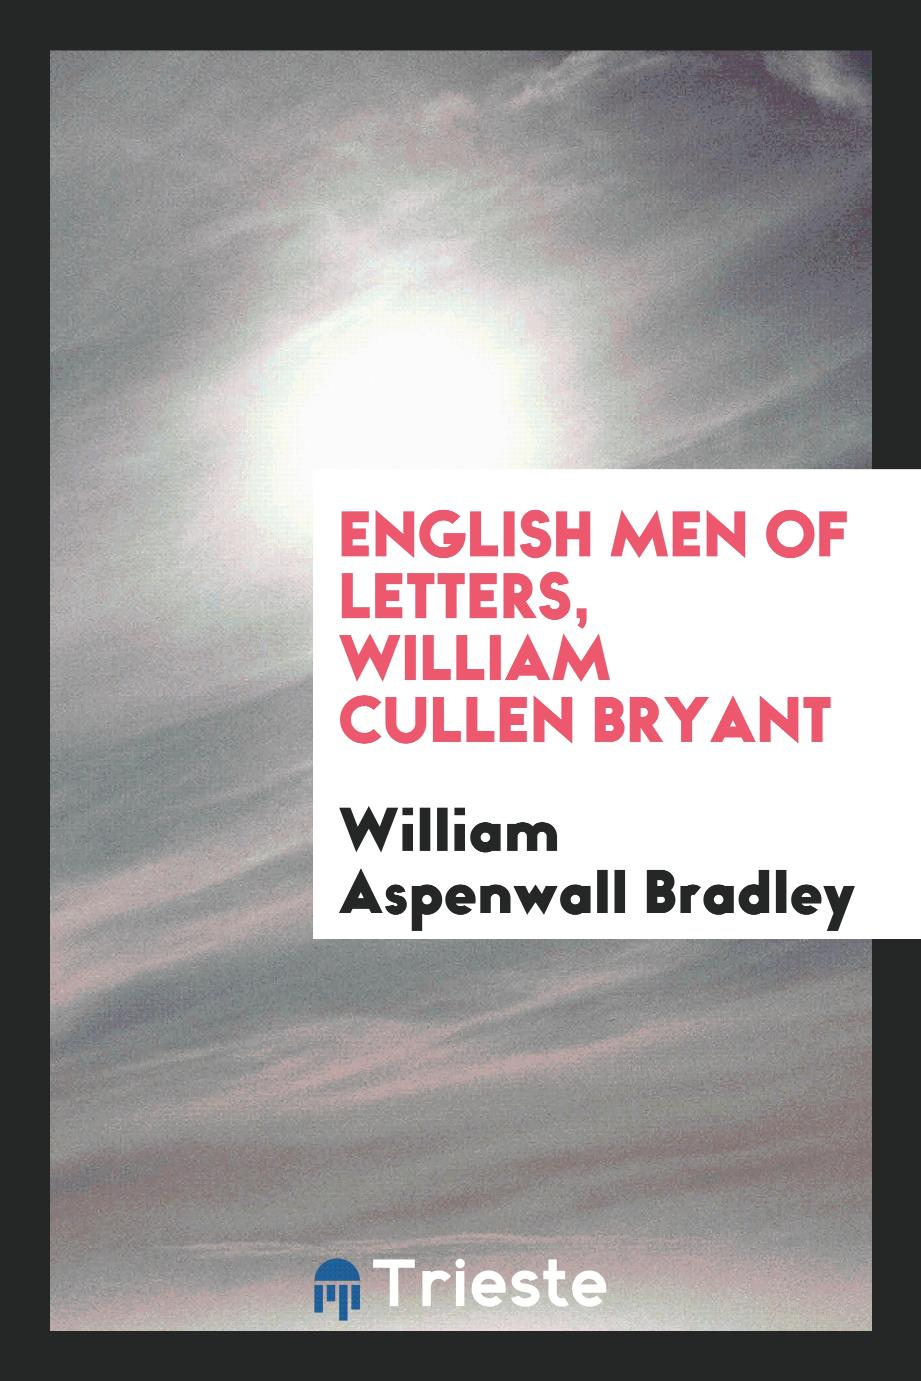 English men of letters, William Cullen Bryant